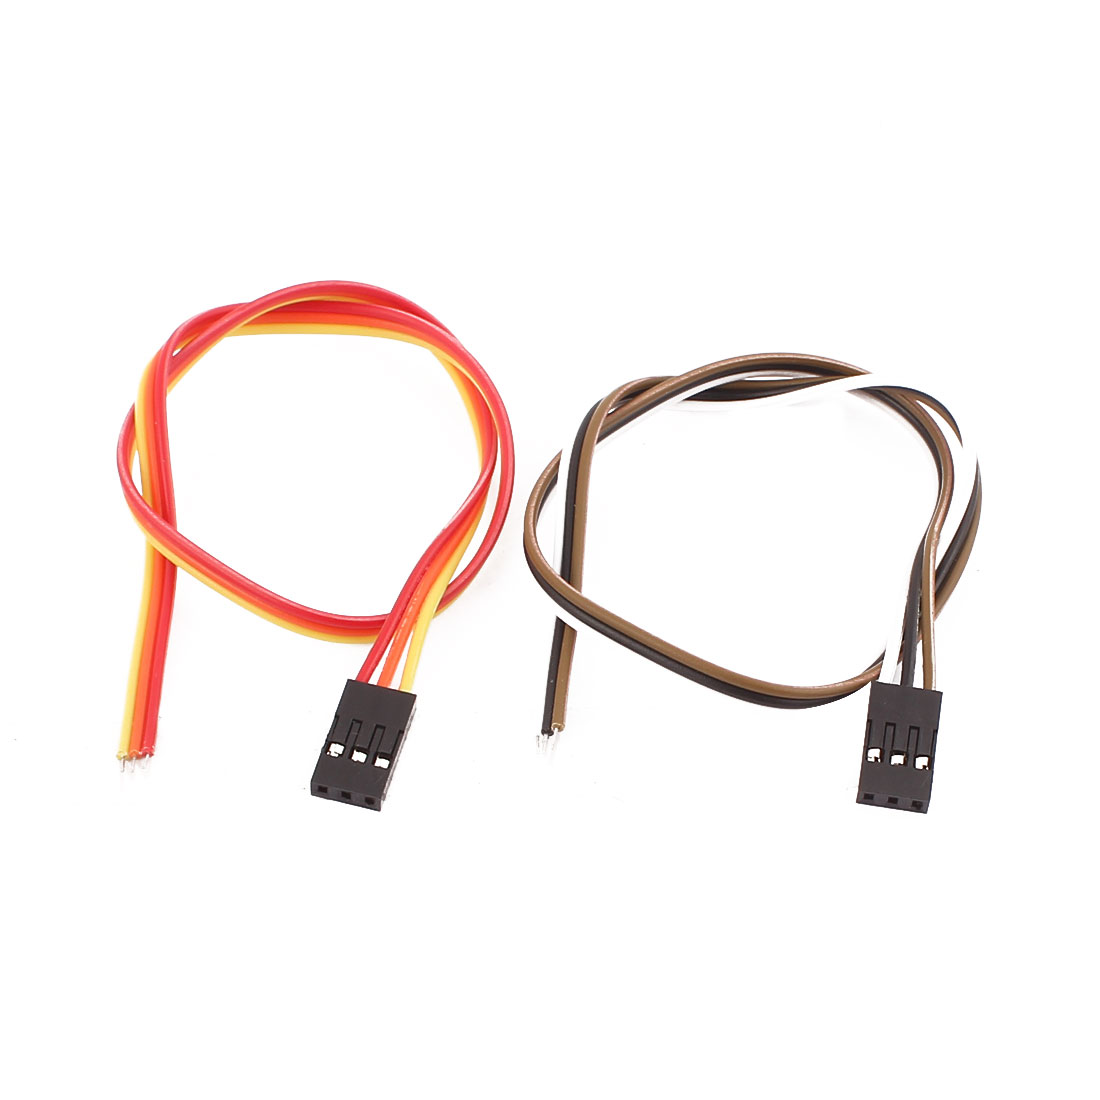 2 Pcs Female 3P Jumper Wires Ribbon Cables Pi Pic Breadboard DIY 30cm Long